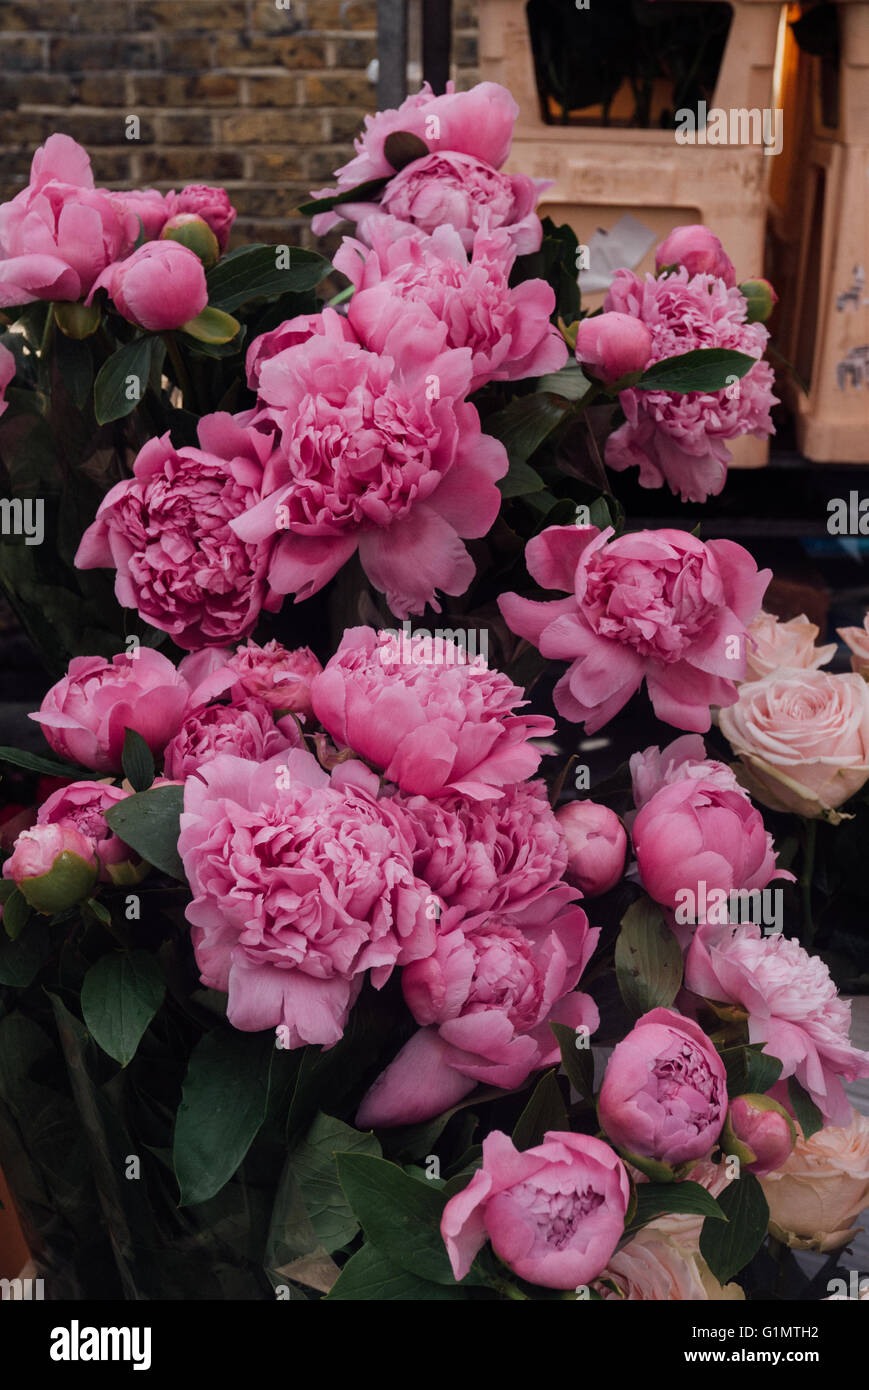 Pink peonies at a stall in Columbia Road Flower market in London - Stock Image